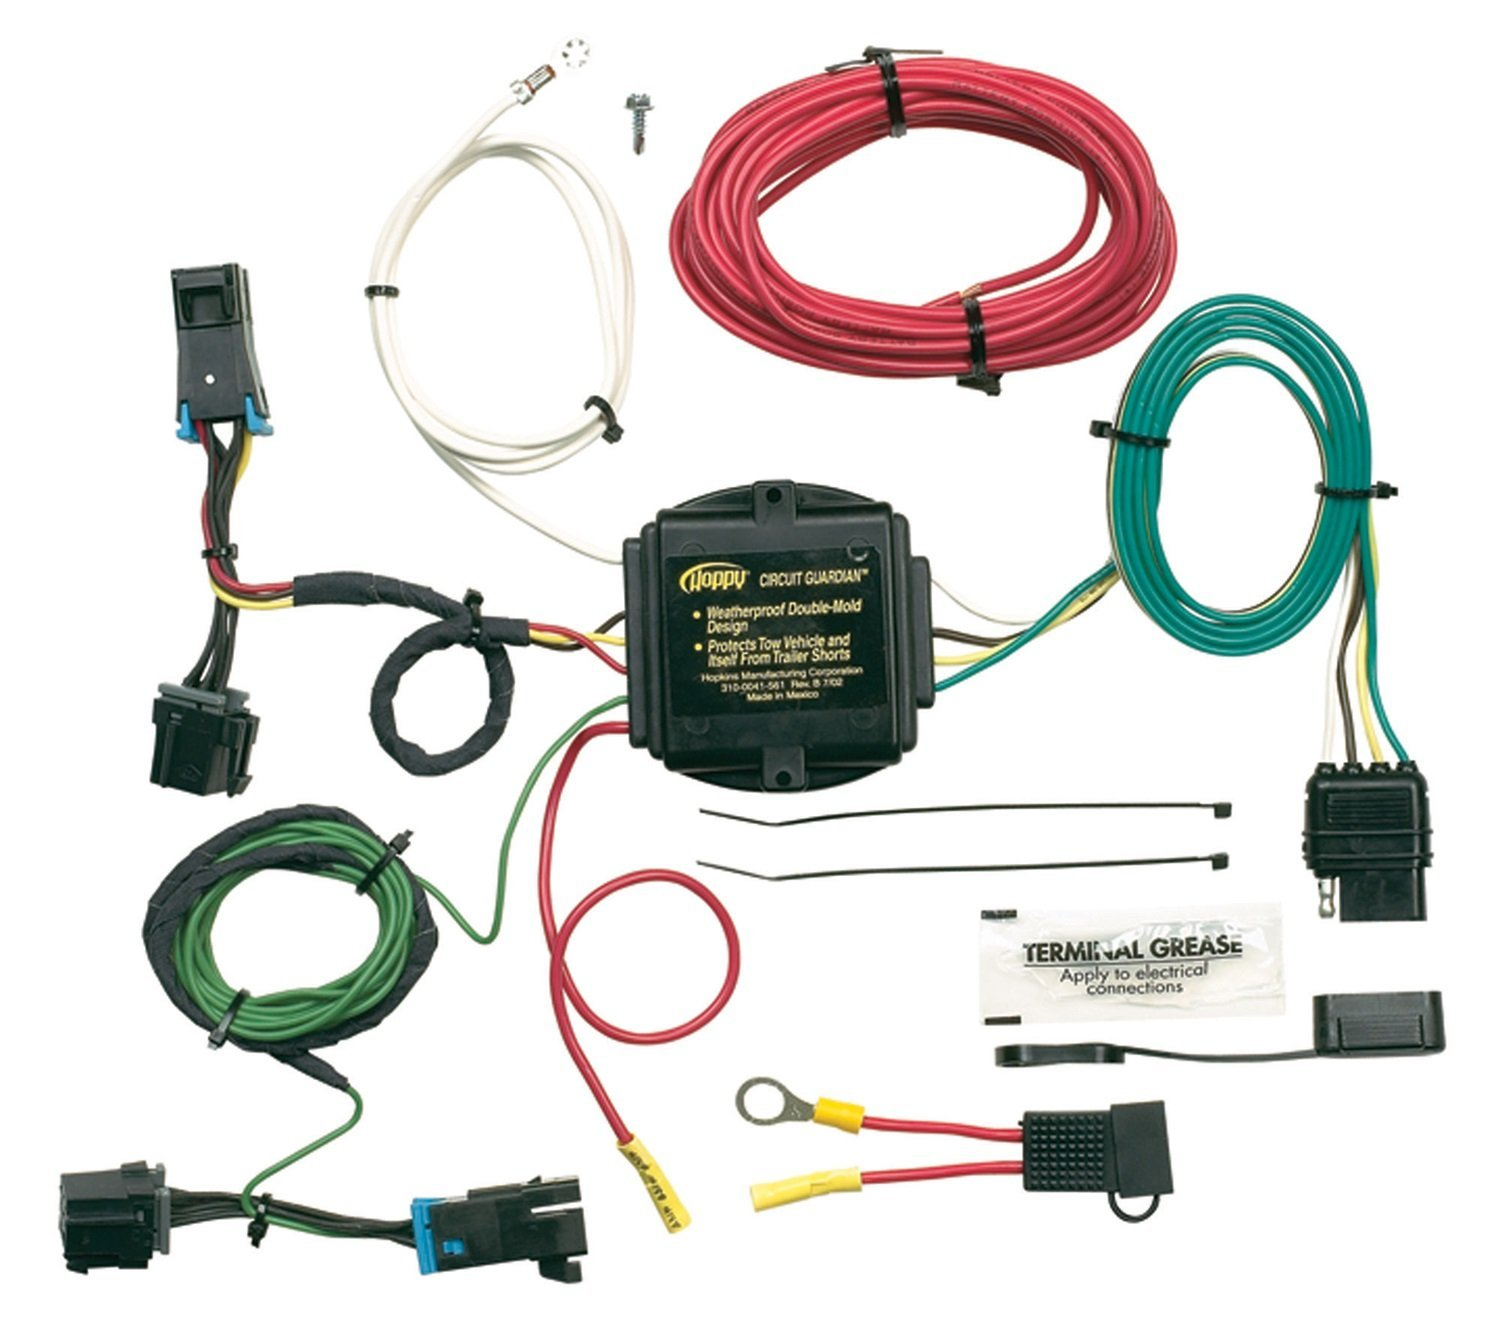 Hopkins 41345 Plug-In Simple Vehicle Wiring Kit, T-Connectors allow ...